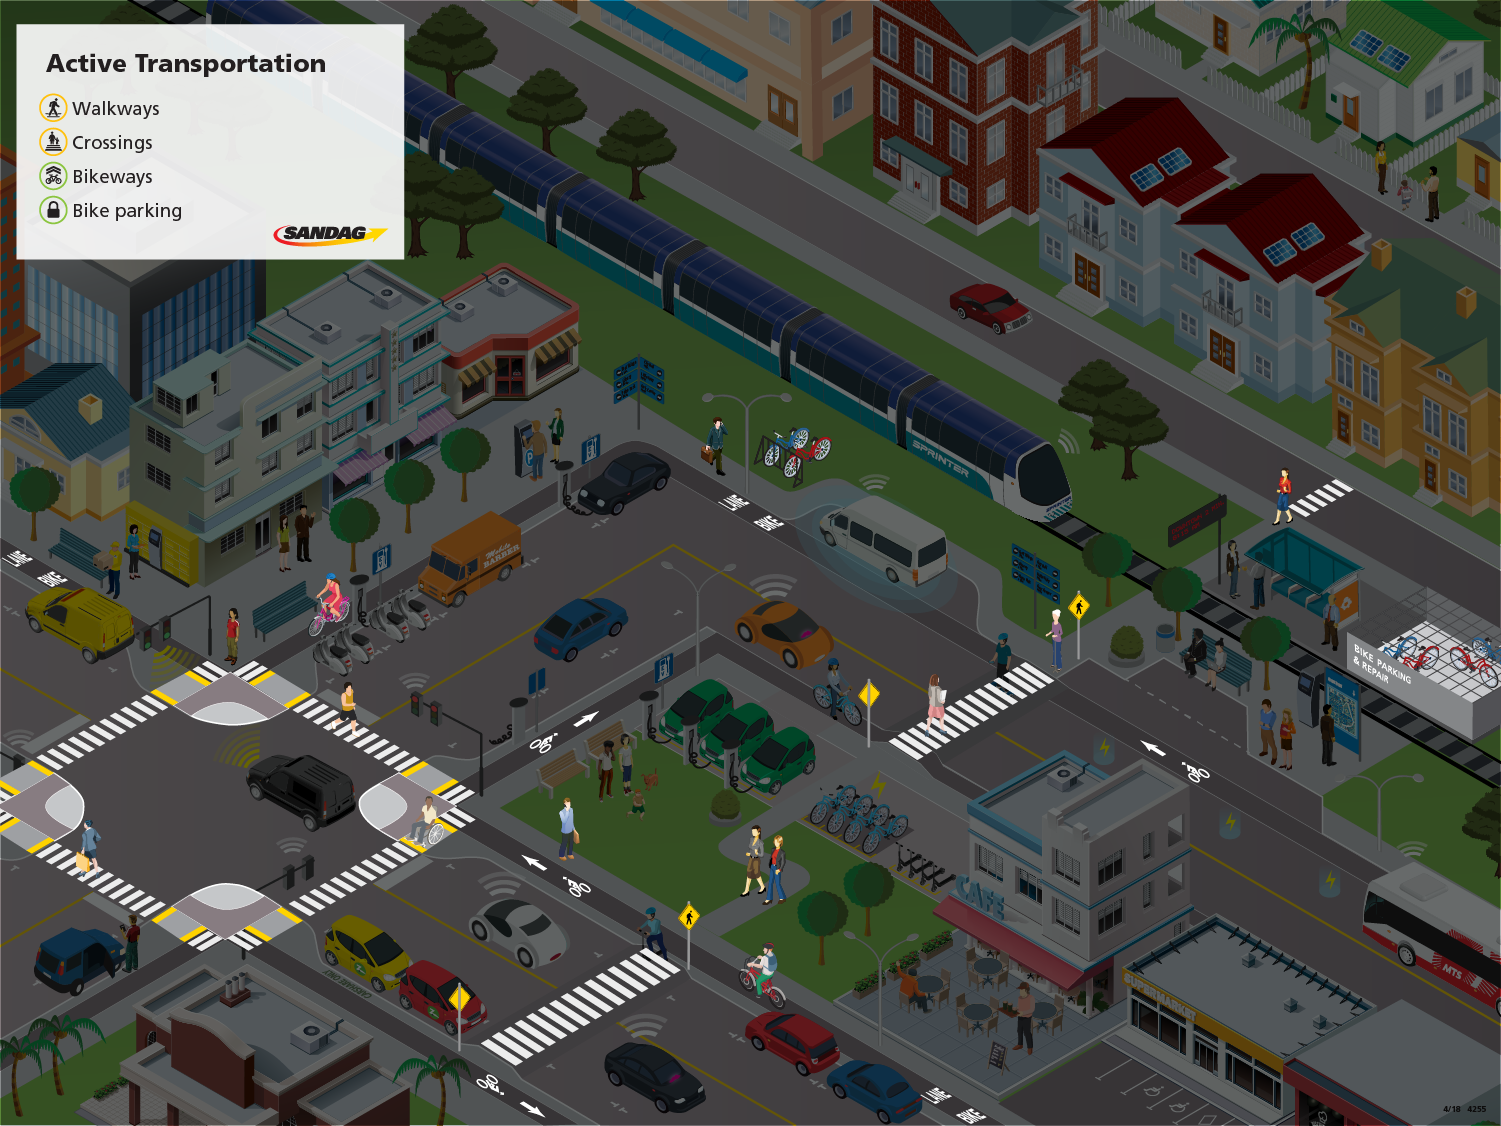 The Active Transportation layer highlights those roadway enhancements and amenities that create a safe and comfortable place for people biking or walking to transit. The graphic depicts pedestrians walking through raised, high-visibility crosswalks, people riding bikes in protected bike lanes, and a secure group bike parking facility with repair station for users to park and service their bikes.